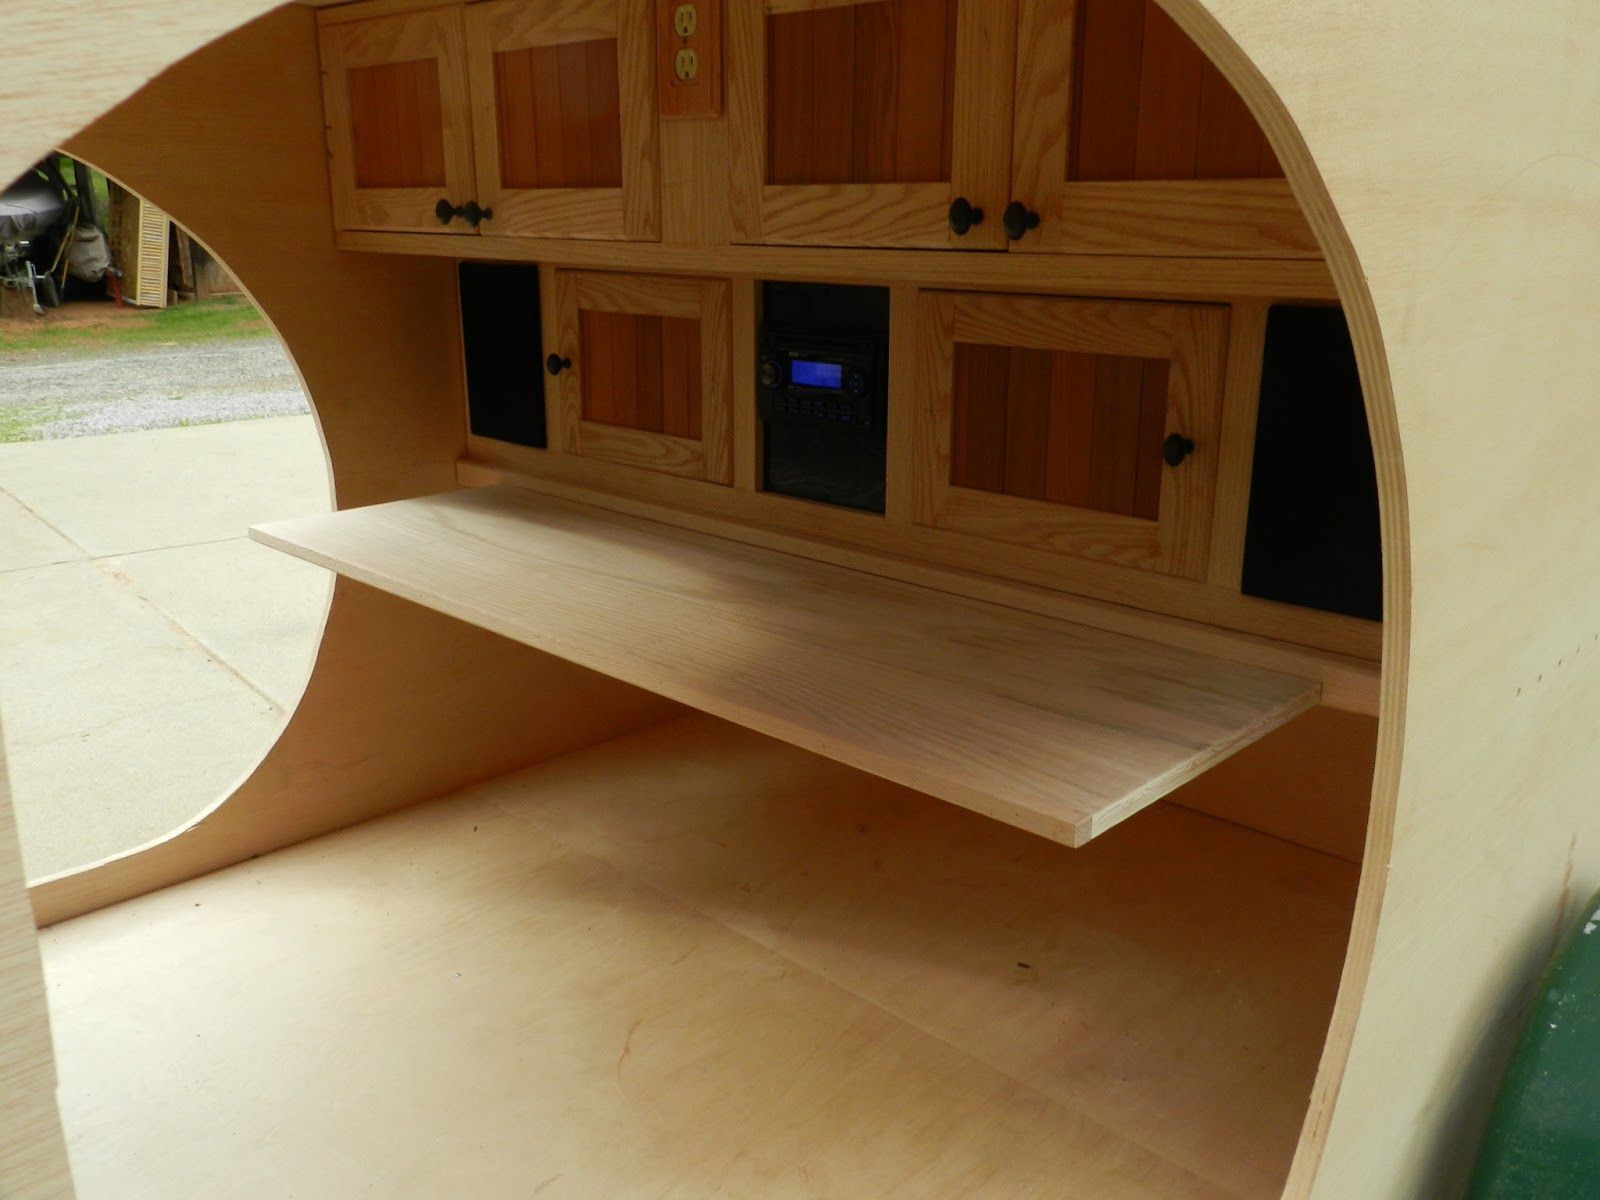 Eds Teardrop Trailer Project Nice Rollout Shelf I Wonder If Could Manage Something Like